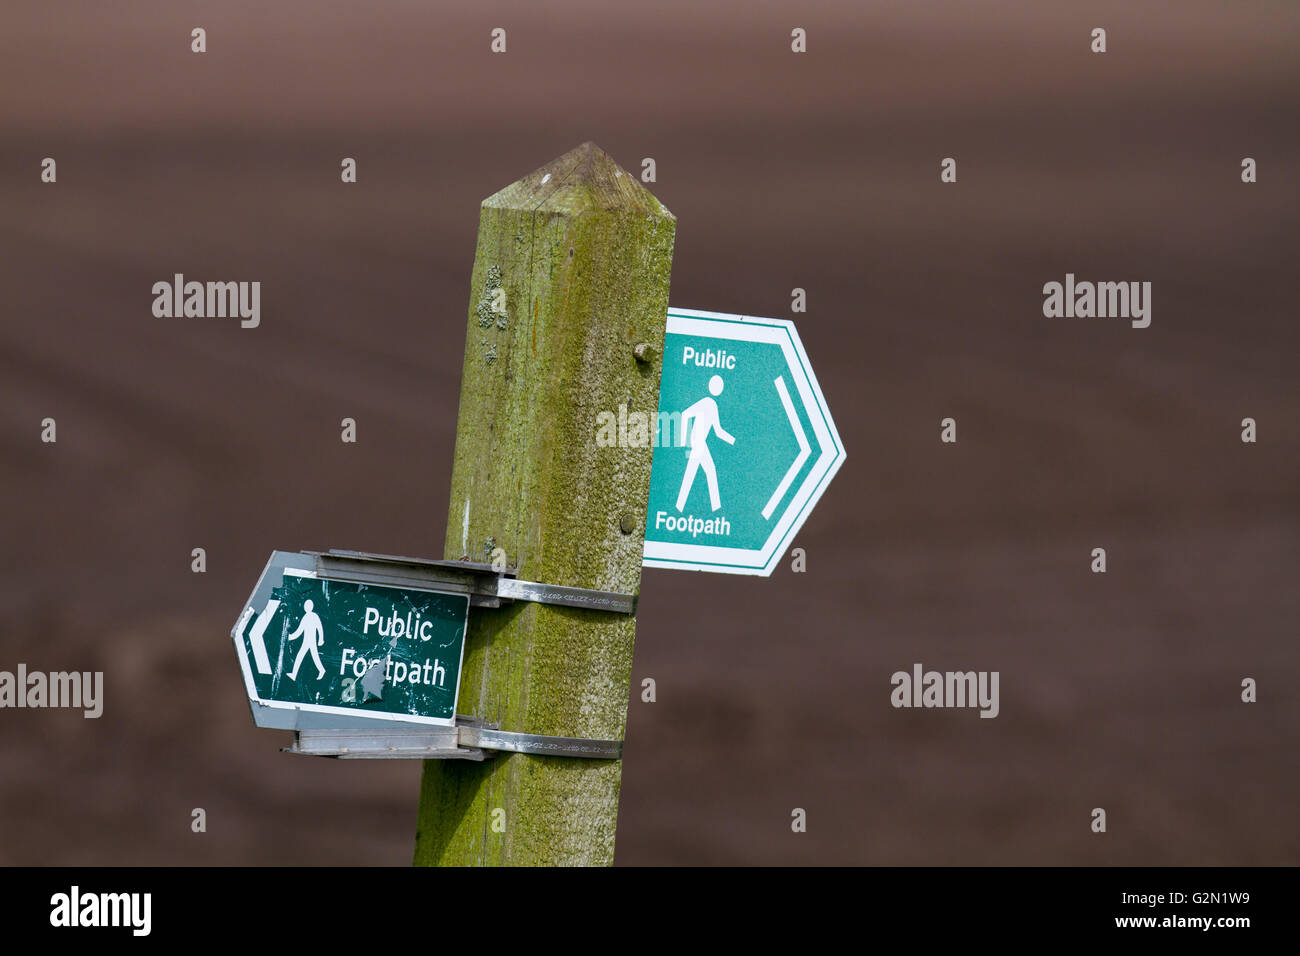 Two different waymarkers indicating Public footpath route signs across farmland in Burscough, Lancashire, UK - Stock Image